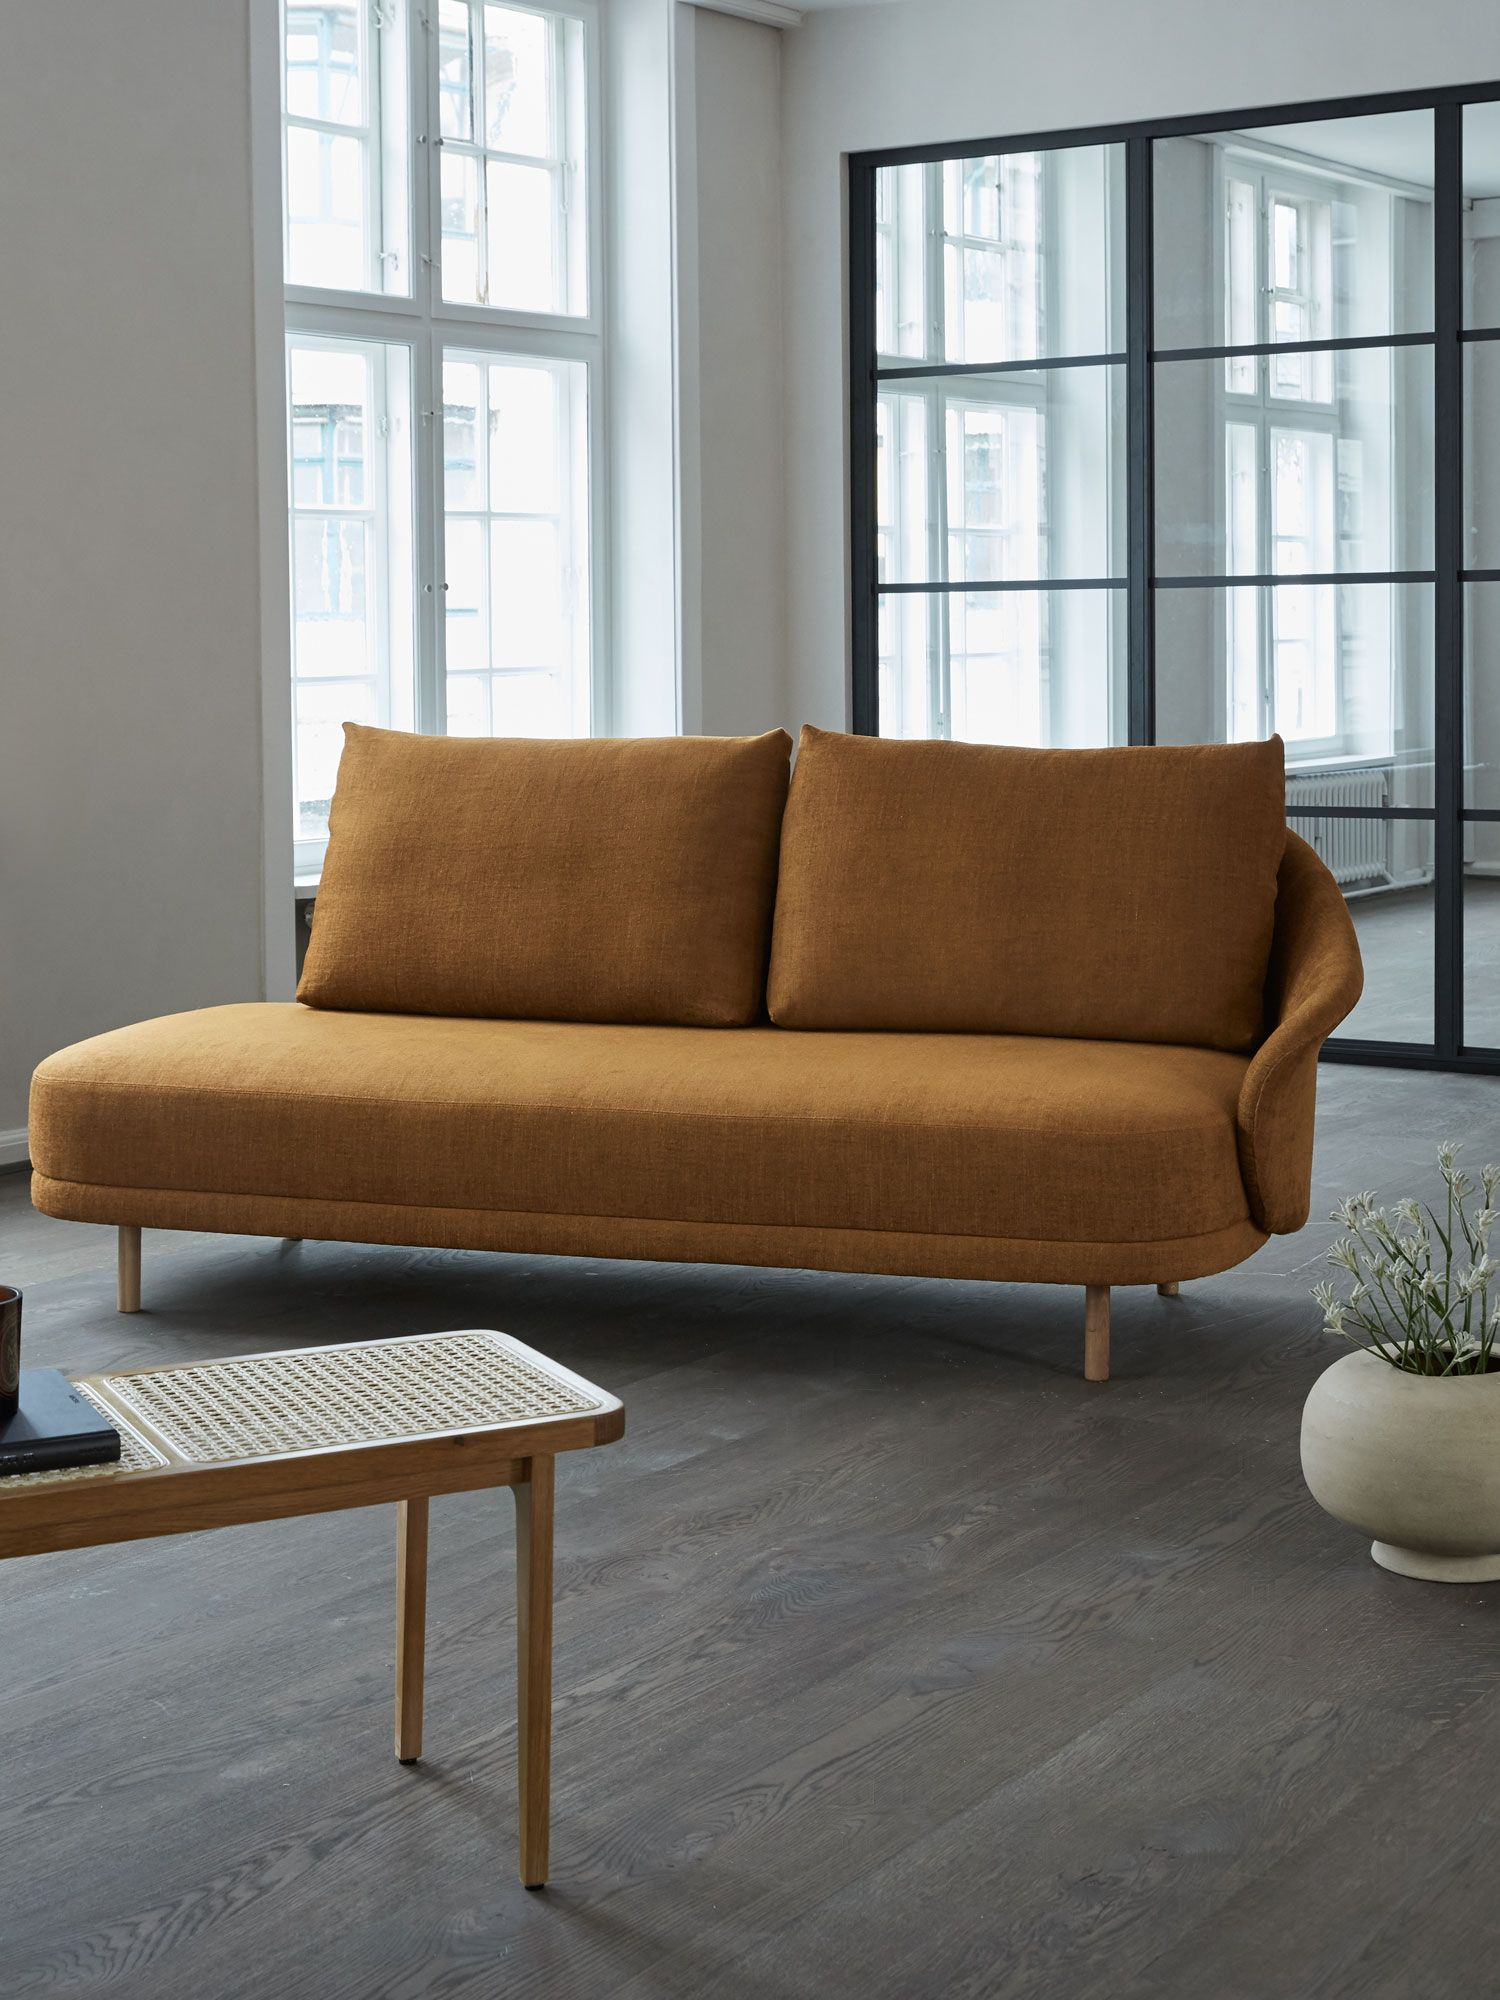 Best In Show Stockholm Design Week Furniture Fair 2019 Yellowtrace Furniture Living Room Furniture Sofas Sofa Furniture fair living room furniture